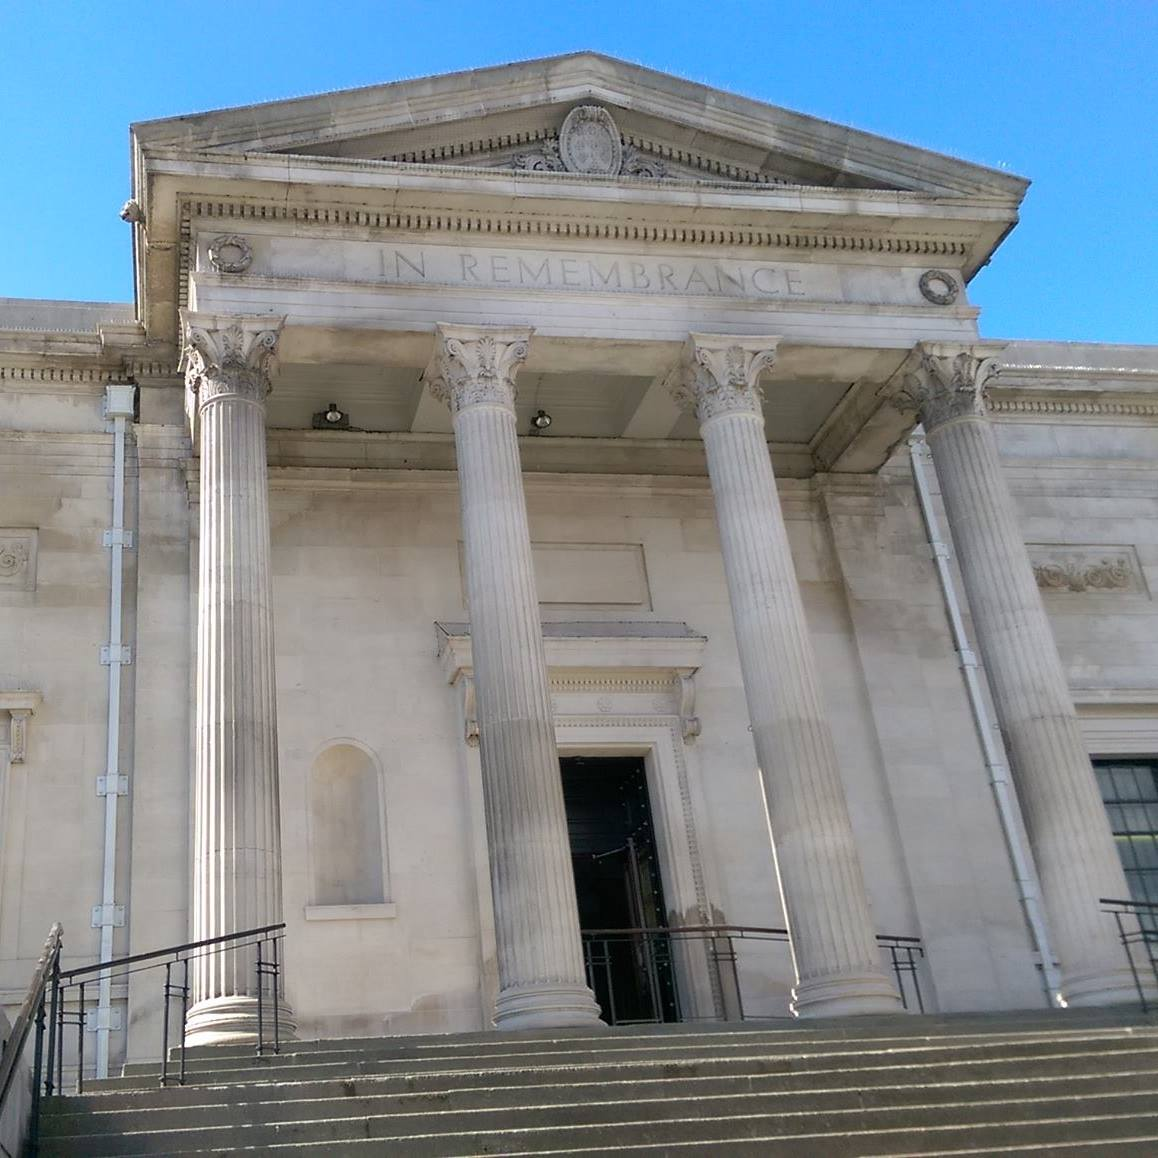 Stockport War Memorial Art Gallery.jpg